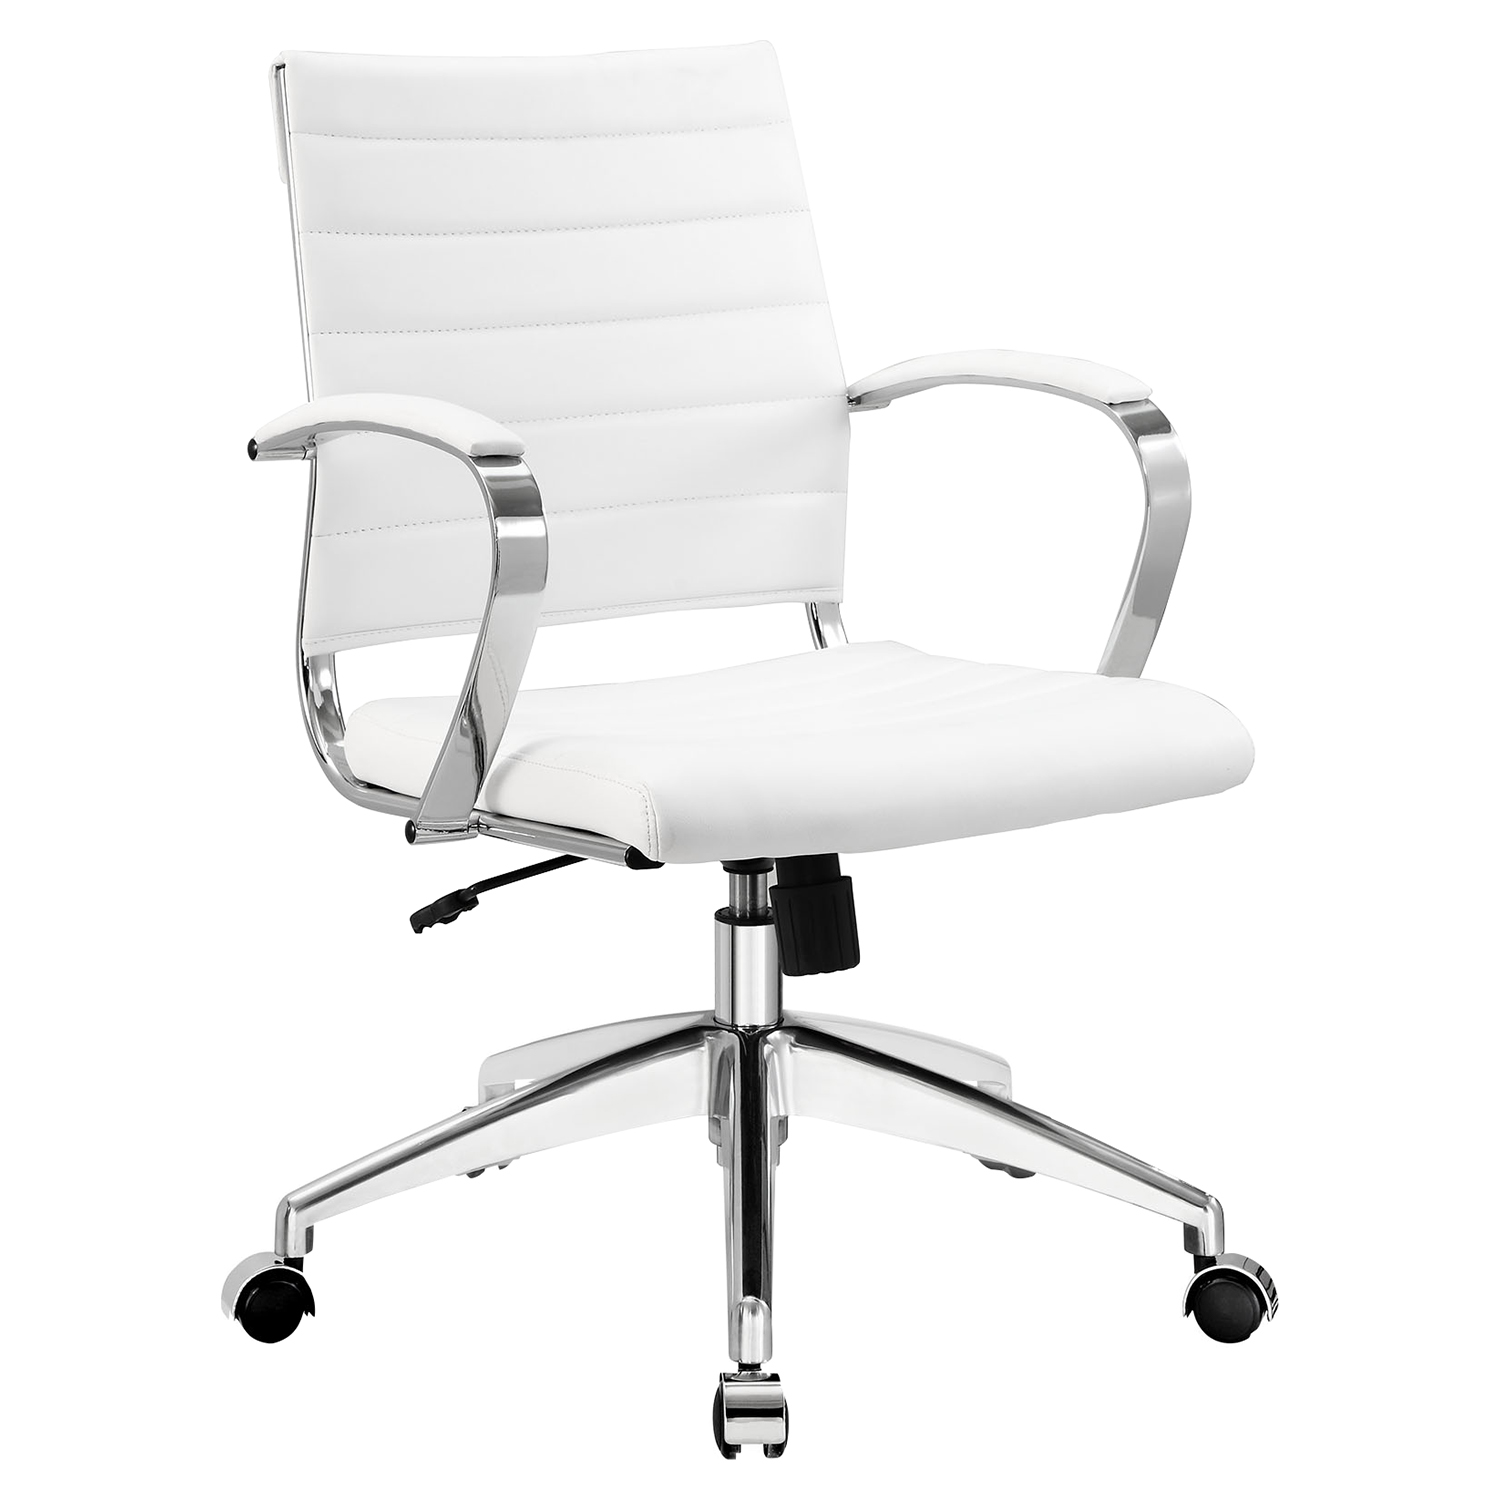 Jive Mid Back Office Chair - Height Adjustment, Tilt Tension - EEI-273